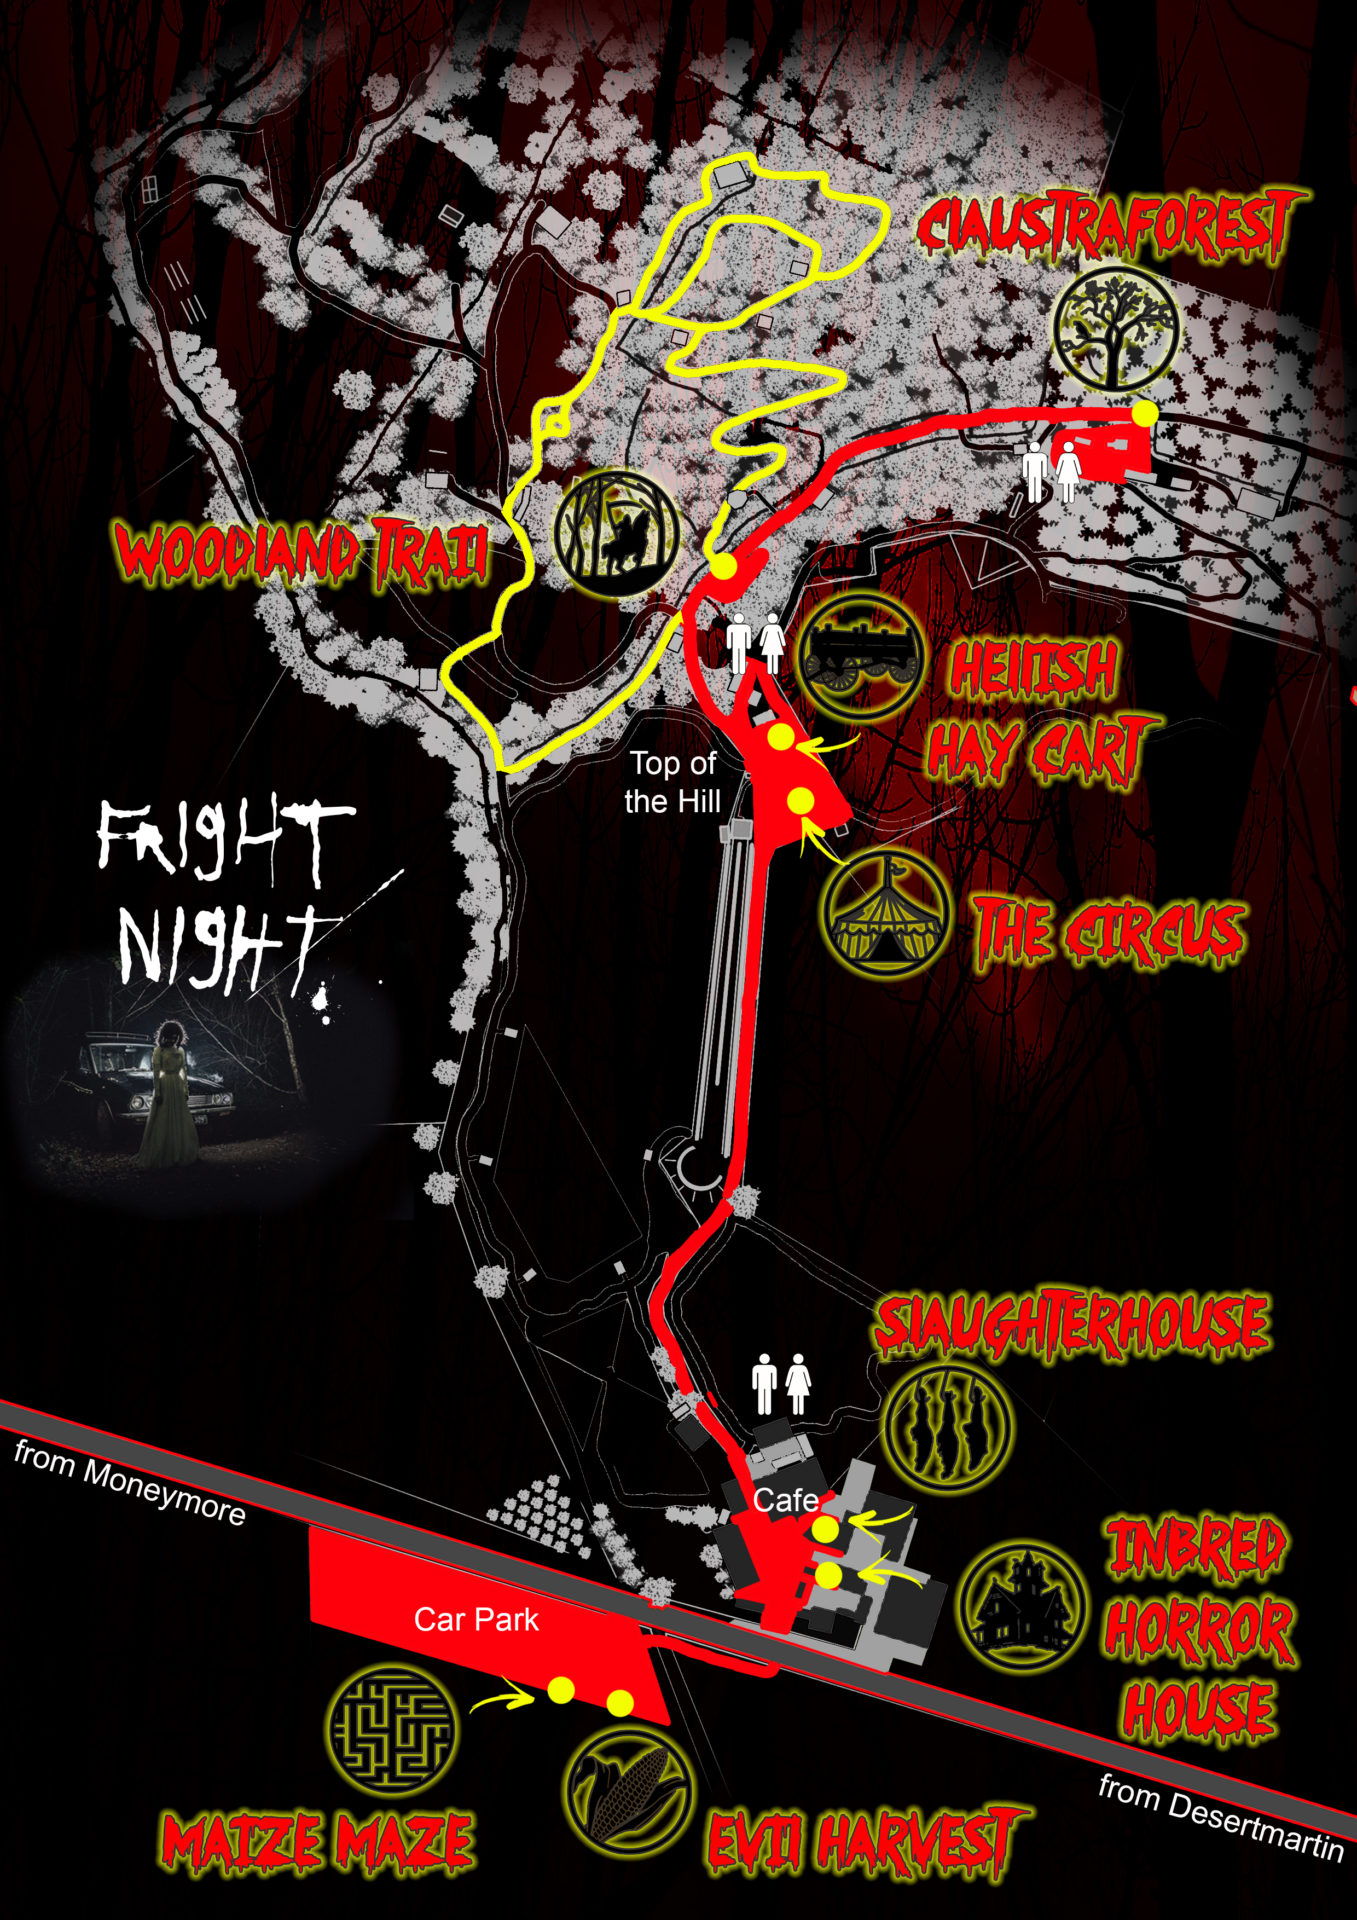 2018 Fright Night Map